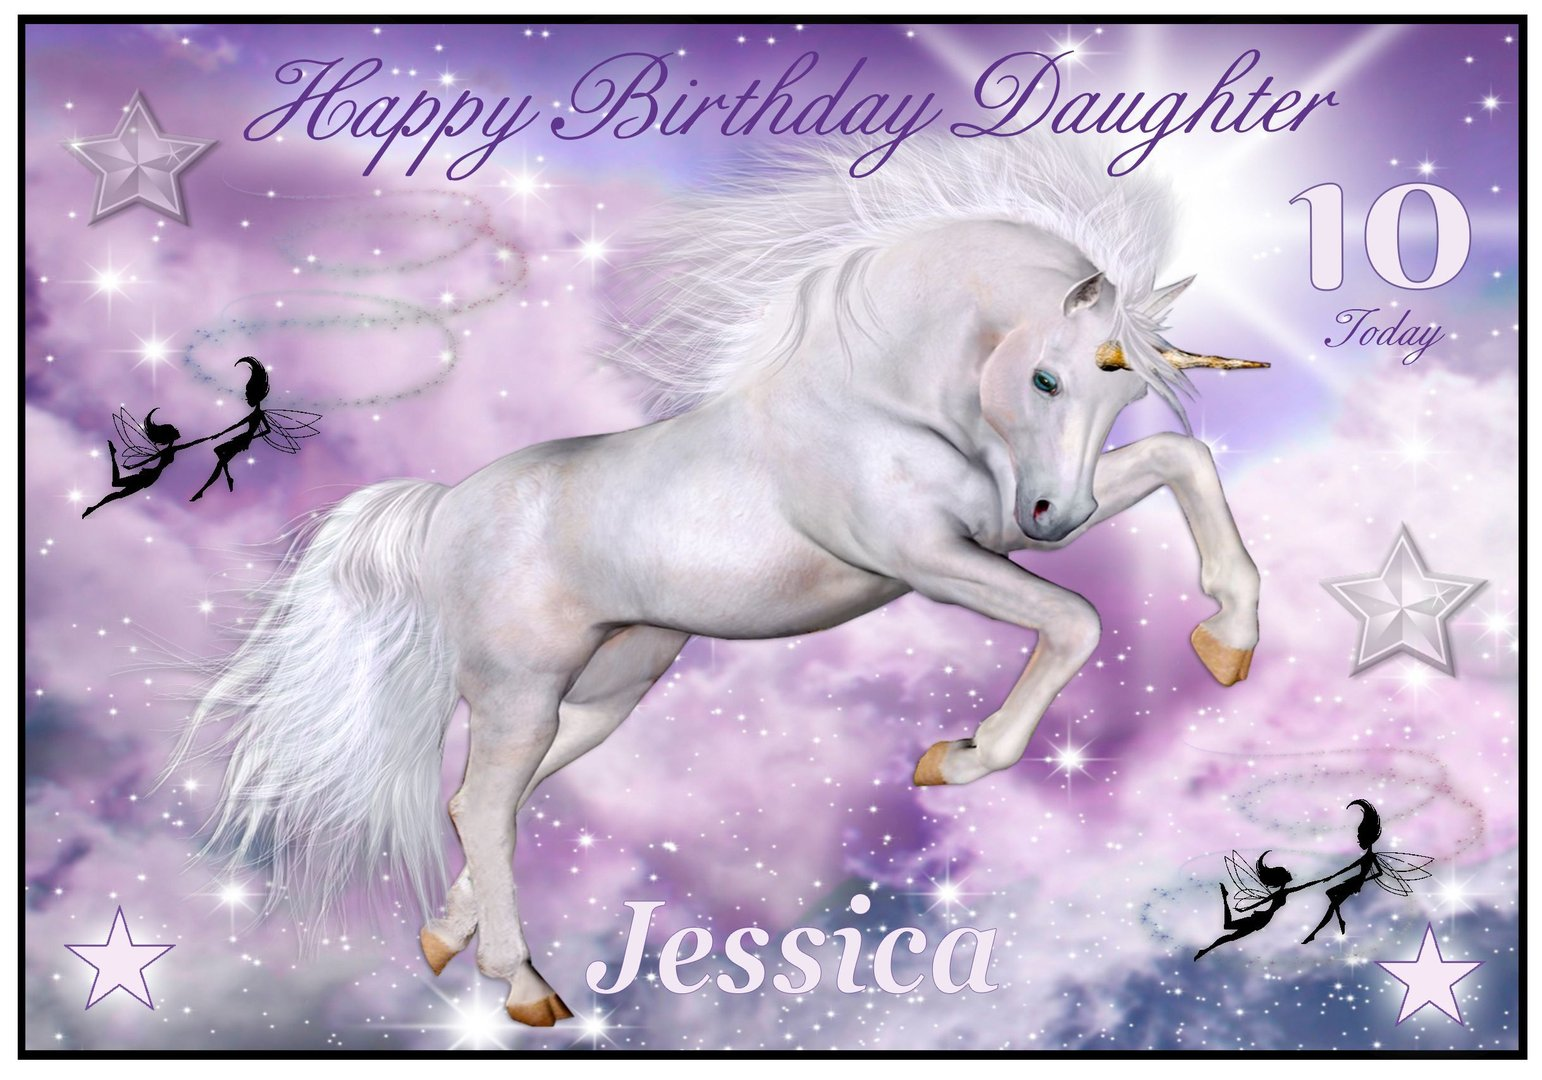 unicorn birthday card daughter ; daughter-horse-birthday-card-unicorn-with-fairies--cropped